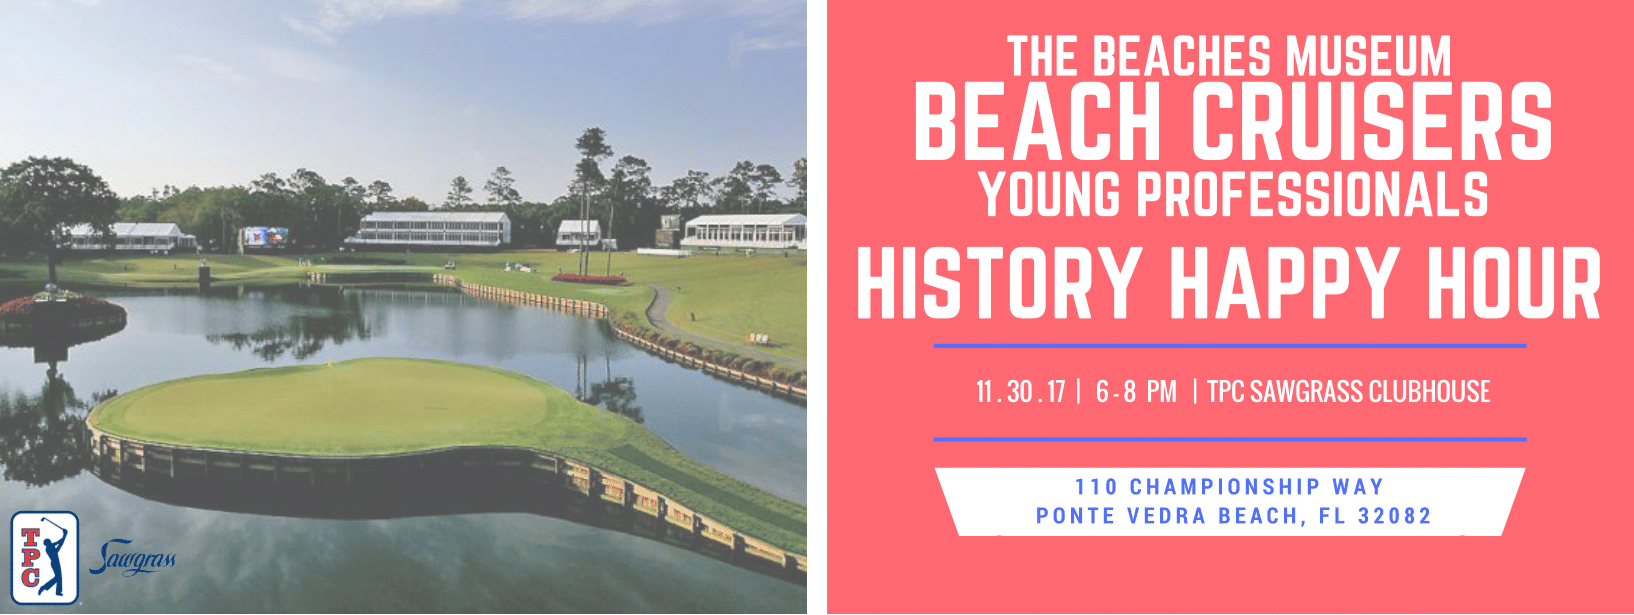 Beach Cruisers History Happy Hour: TPC Sawgrass